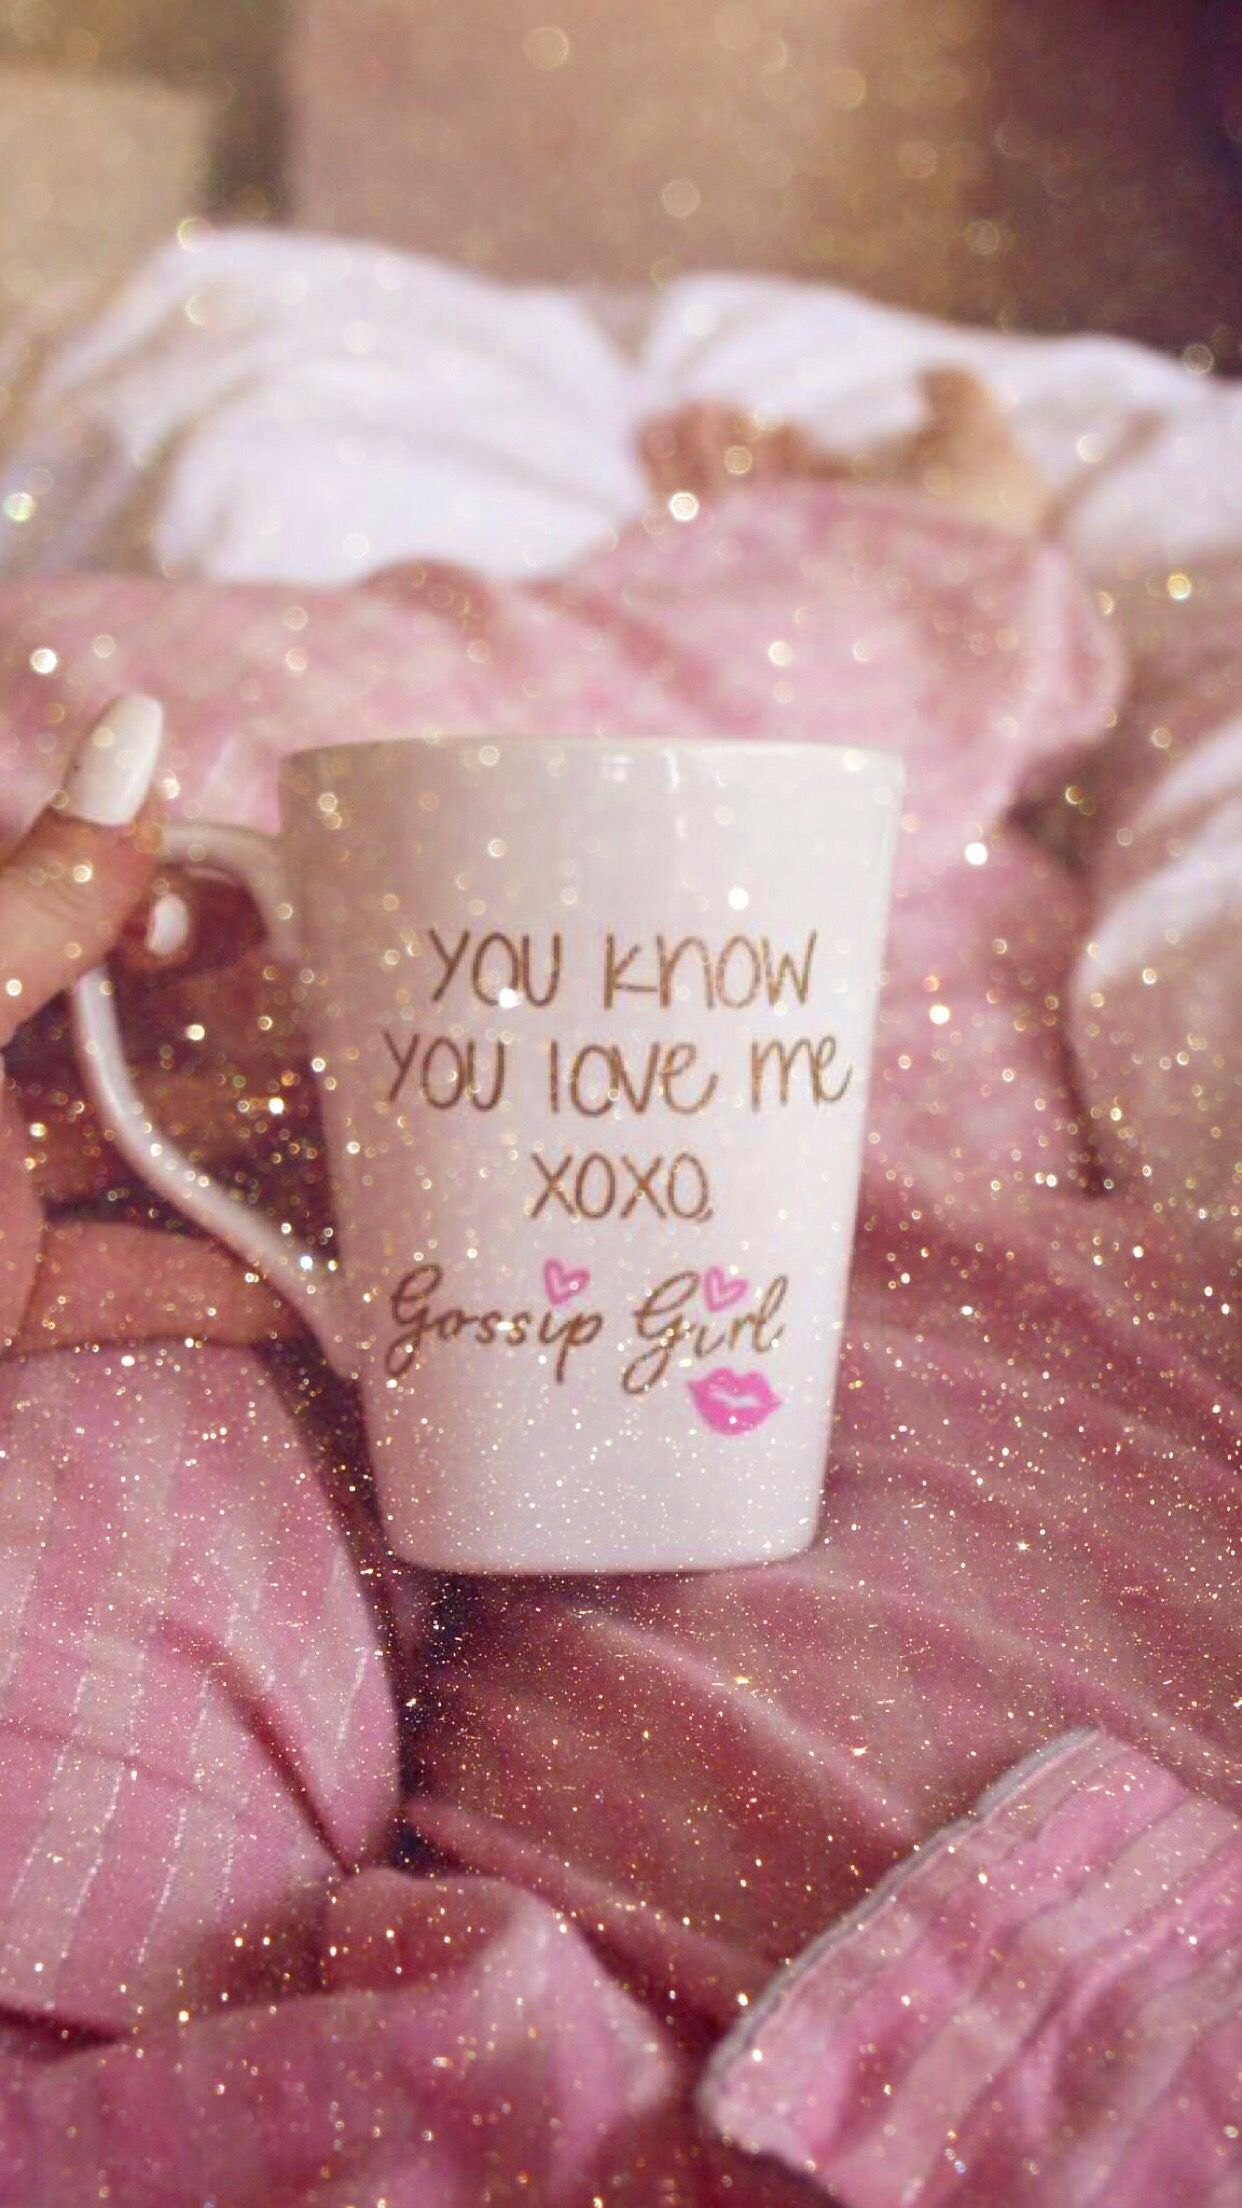 wallpaper, iPhone, android, background, HD, coffee, mug, cup, pink ...